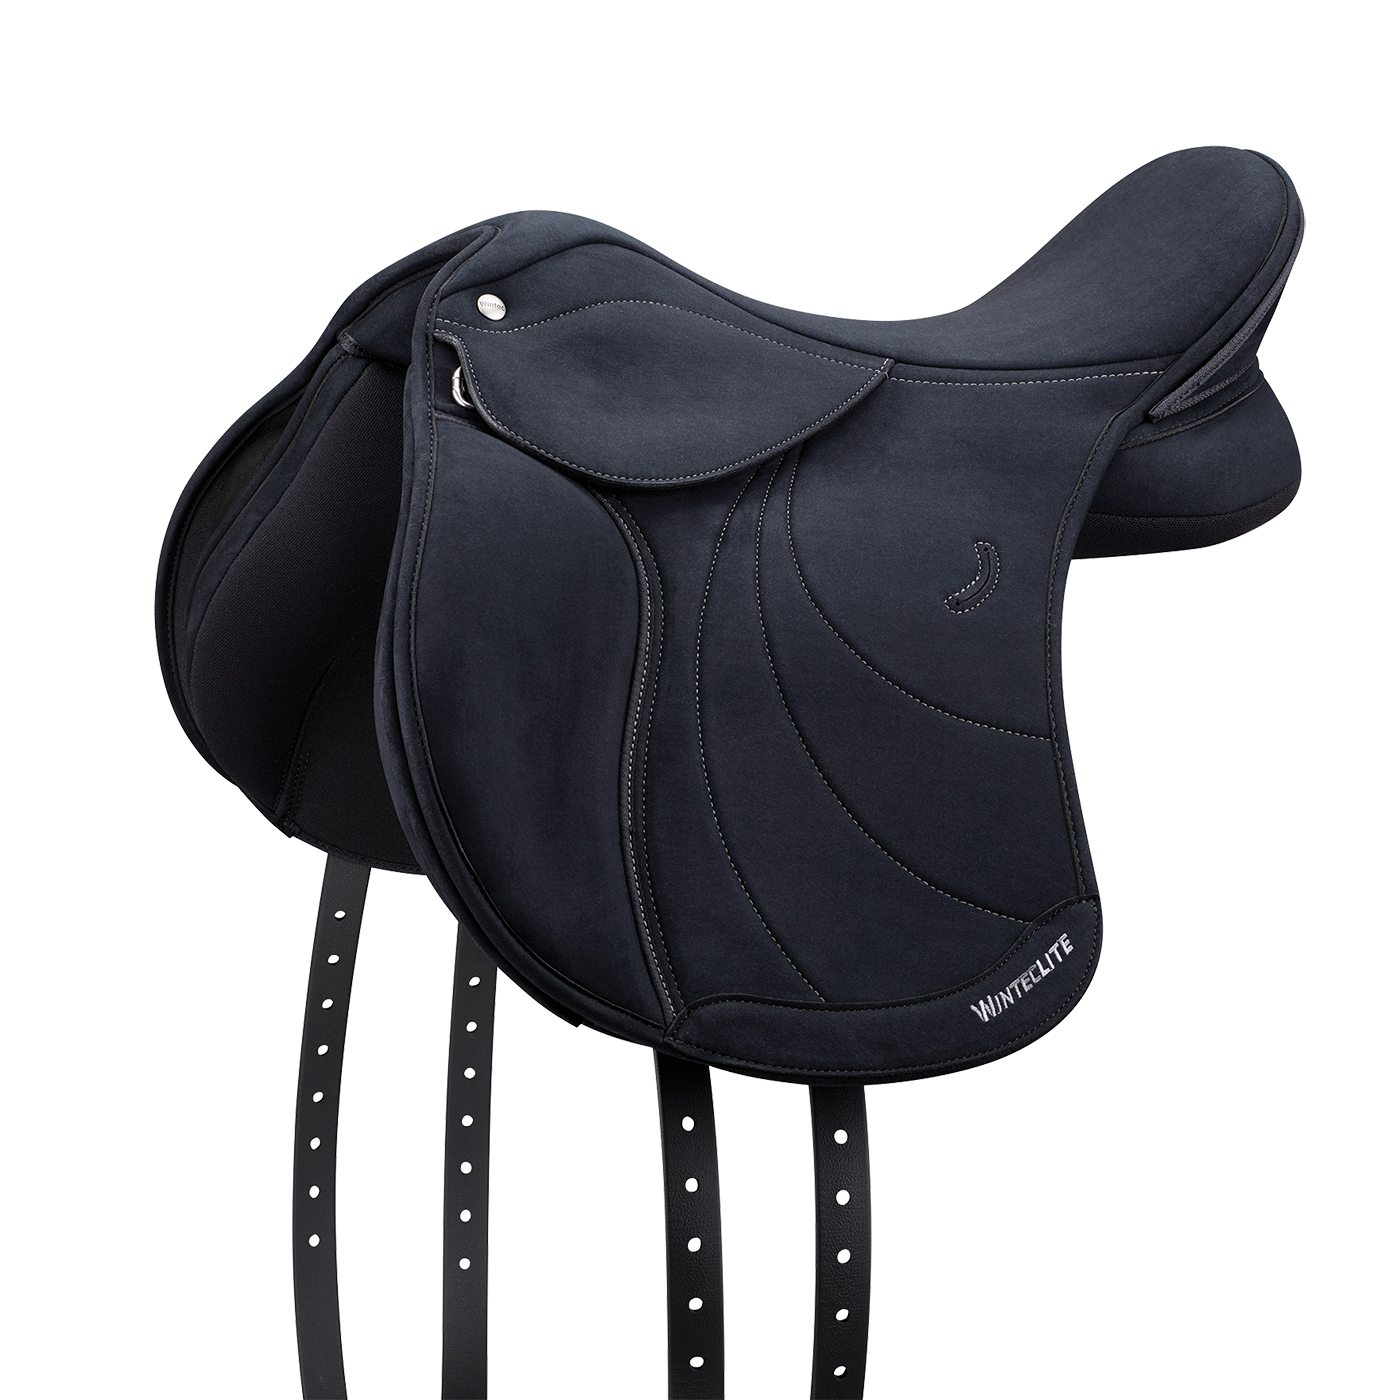 WintecLite Pony All Purpose D'Lux - 361:31034701774919,32127601770567